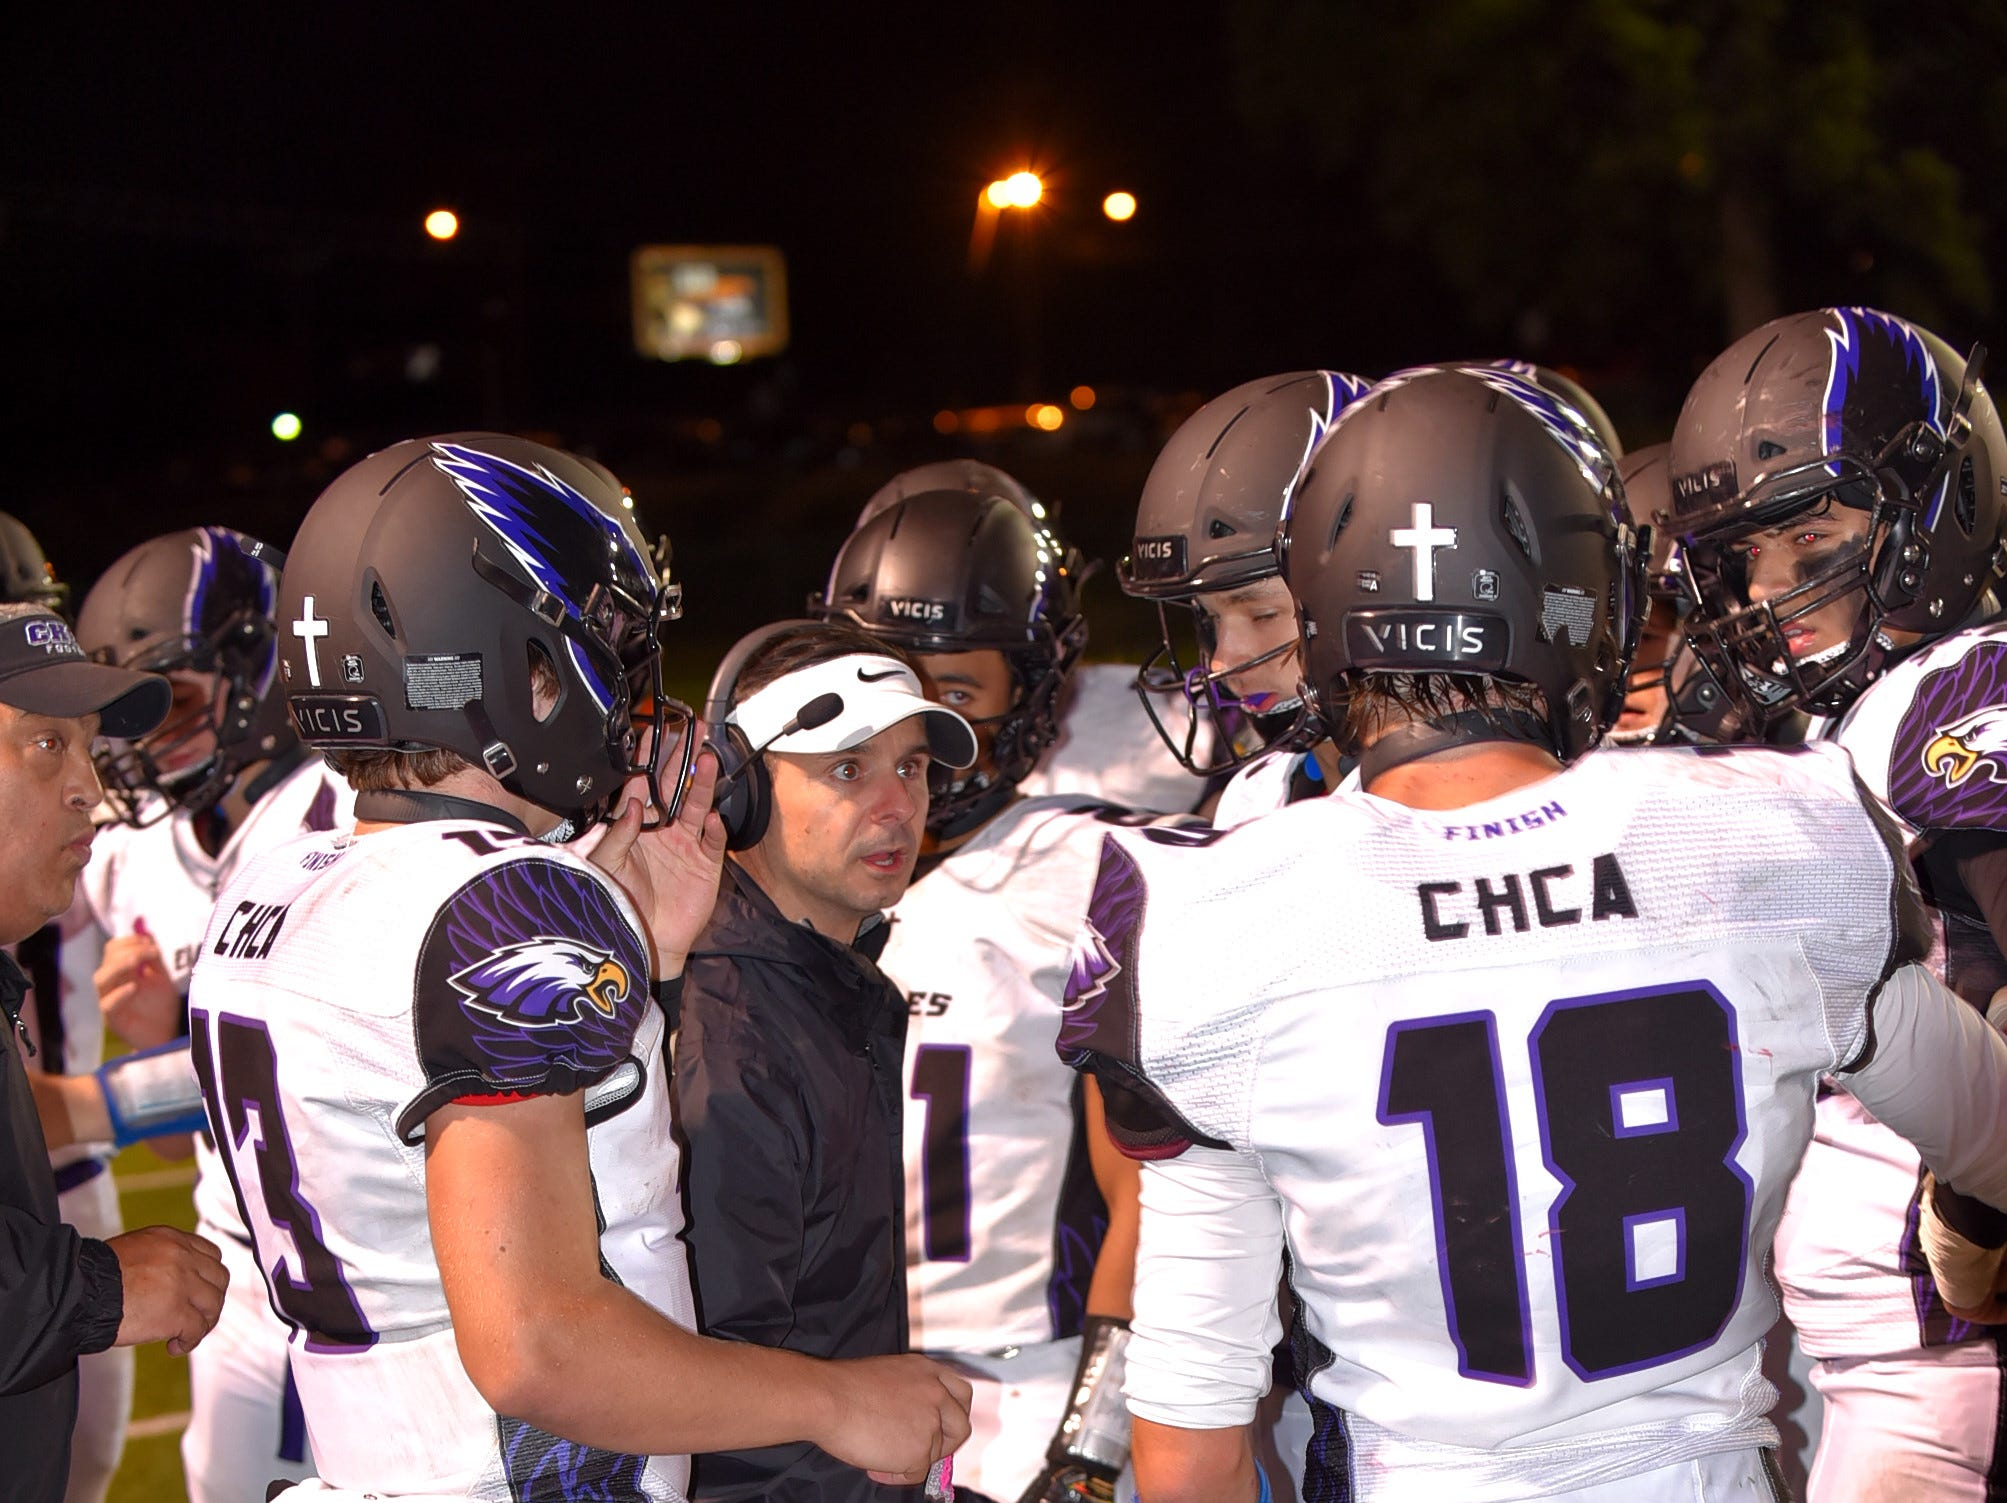 The CHCA offense reviews strategies during a timeout, October 19, 2018.